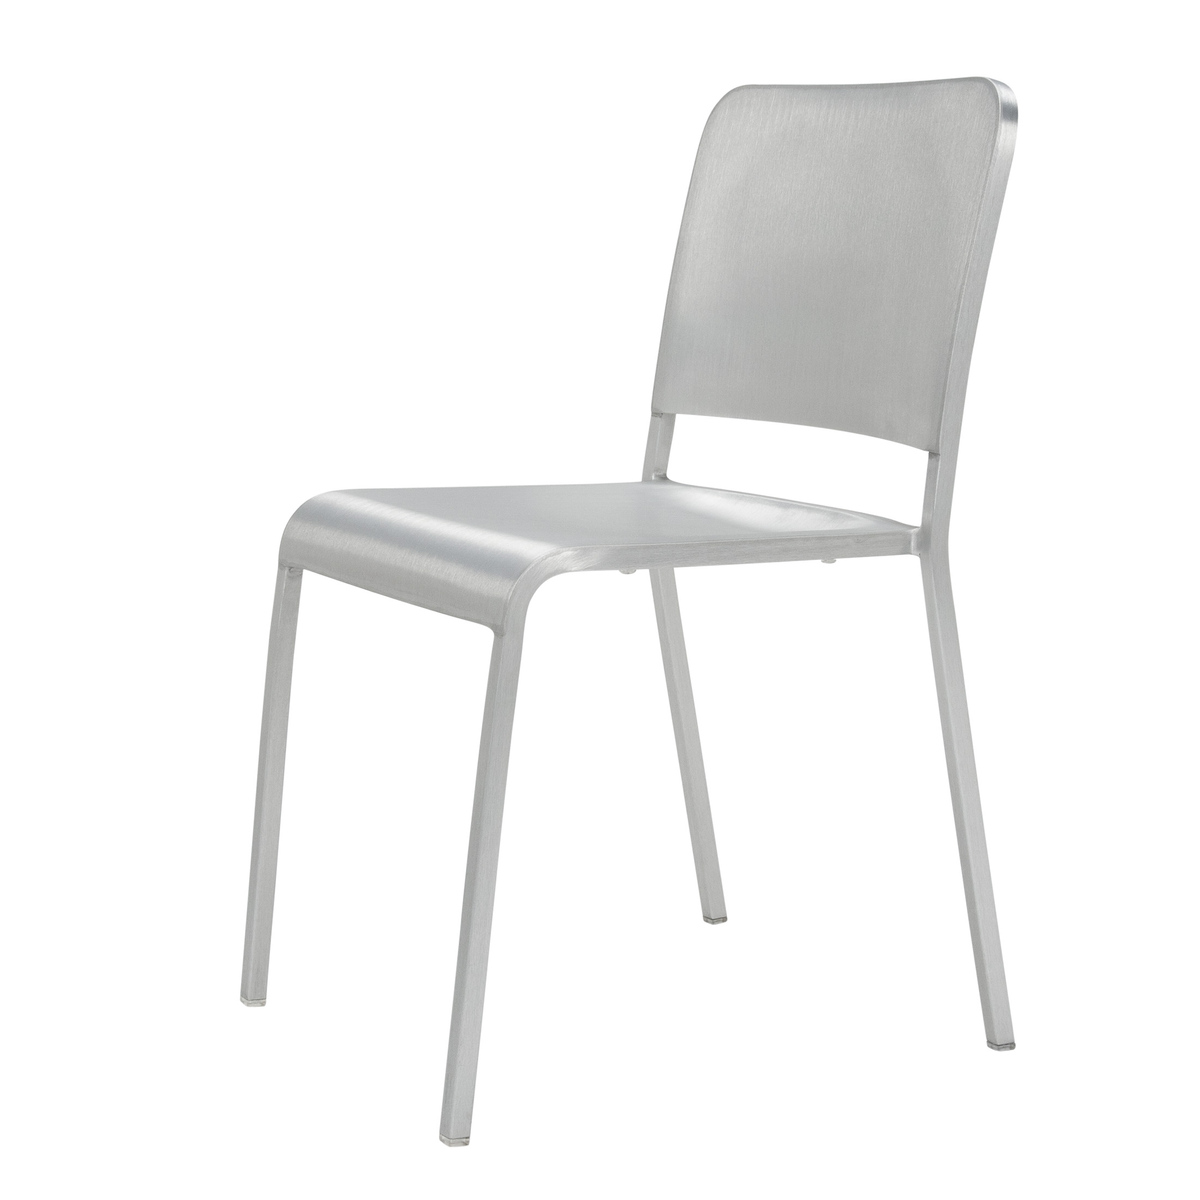 20-06™ STACKING CHAIR